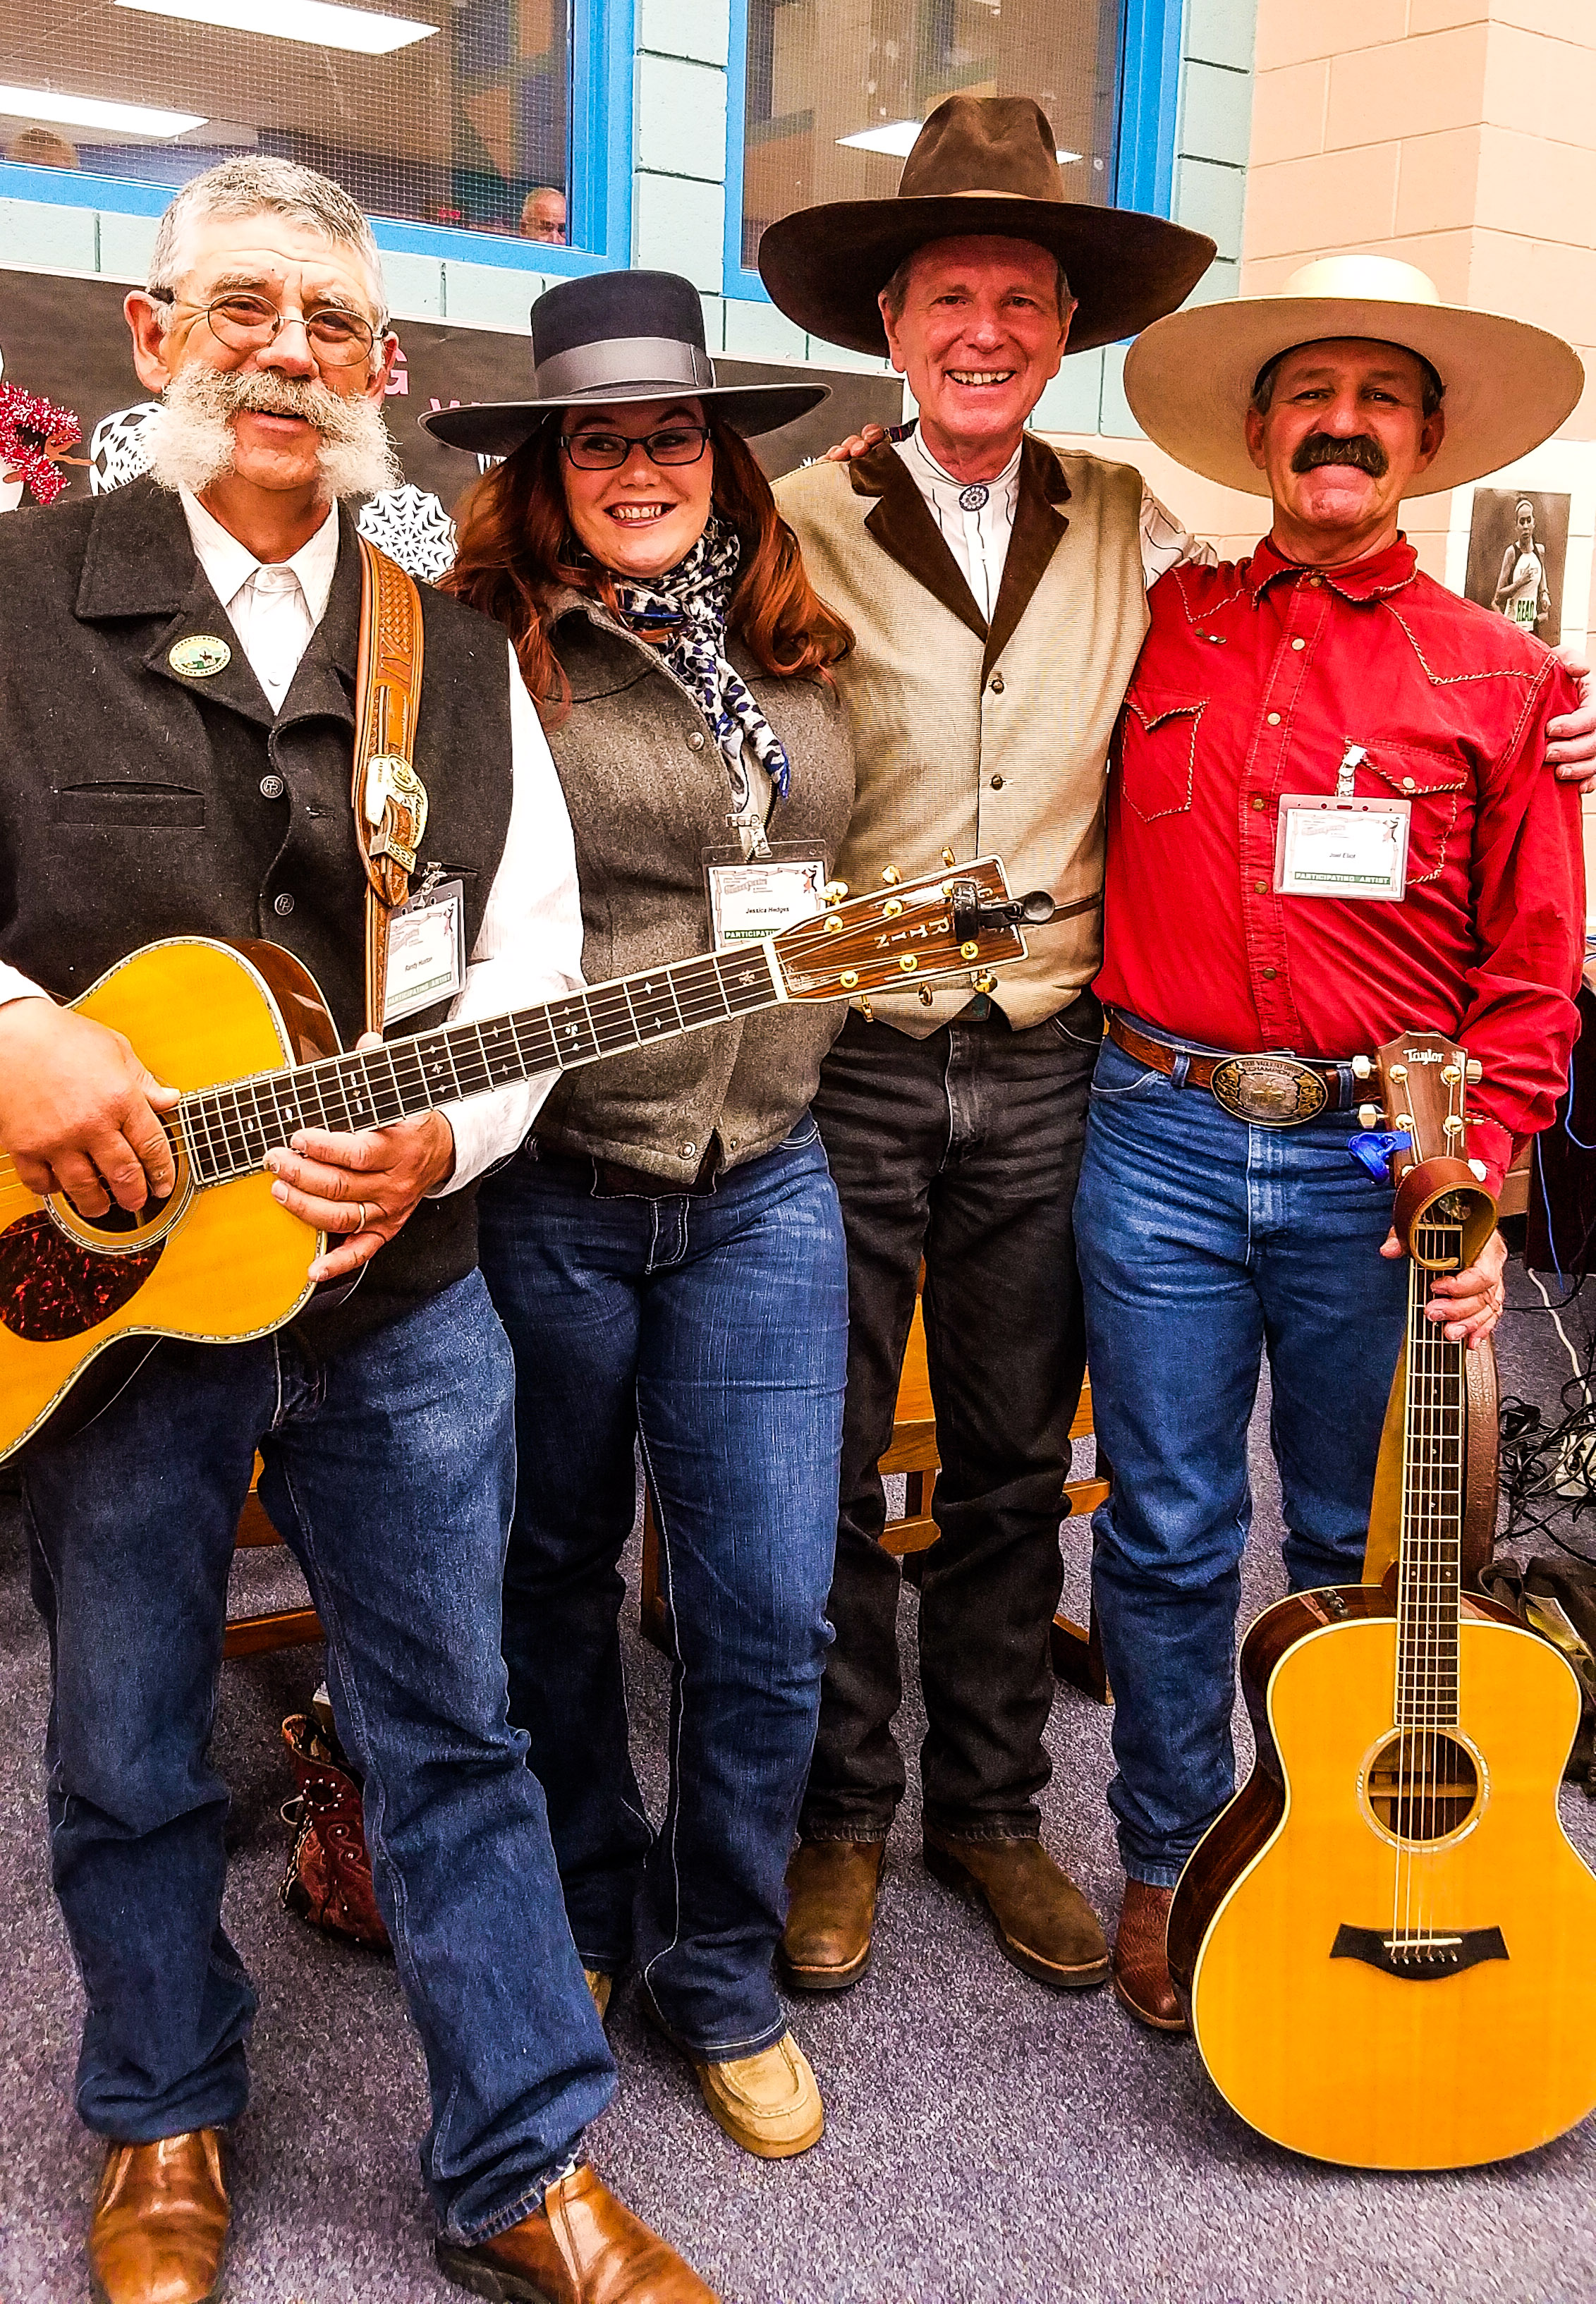 Left to right: Randy Huston, Jessica Hedges, Wash Tub Jerry, and Joel Eliot